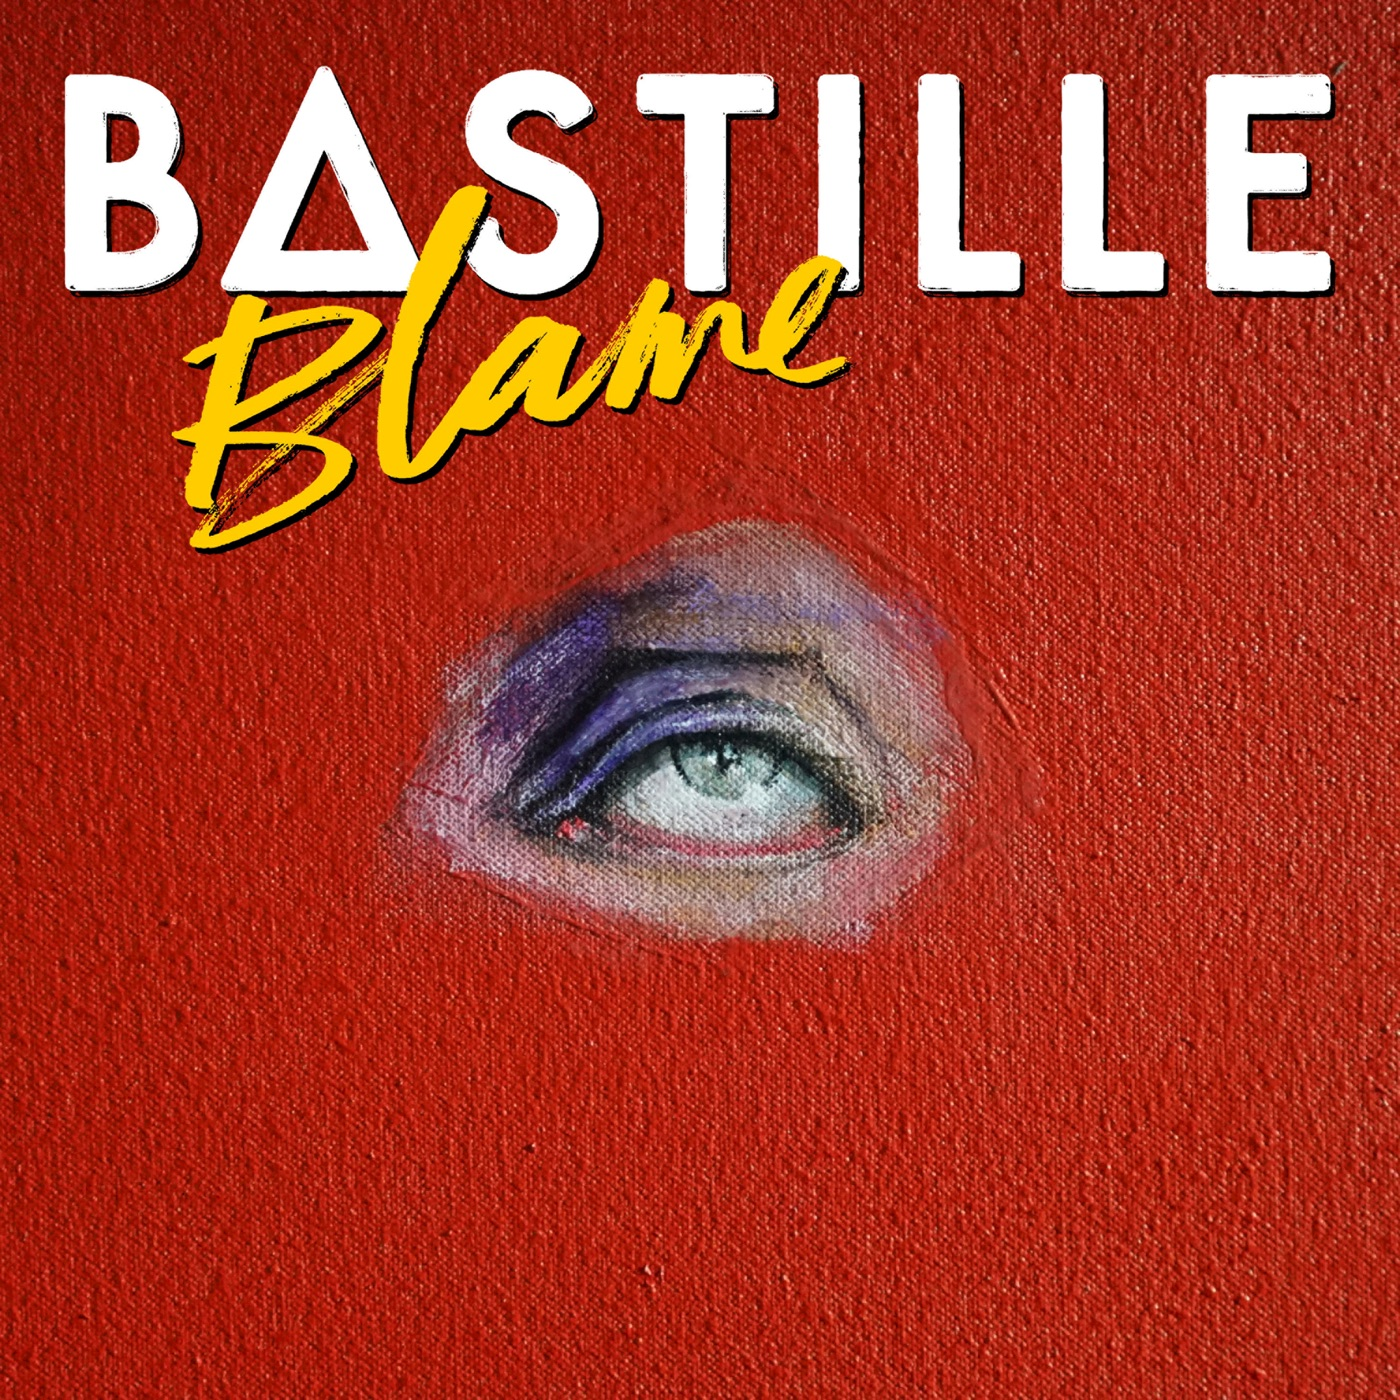 Download Bastille Blame Remixes EP [iTunes Plus AAC M4A